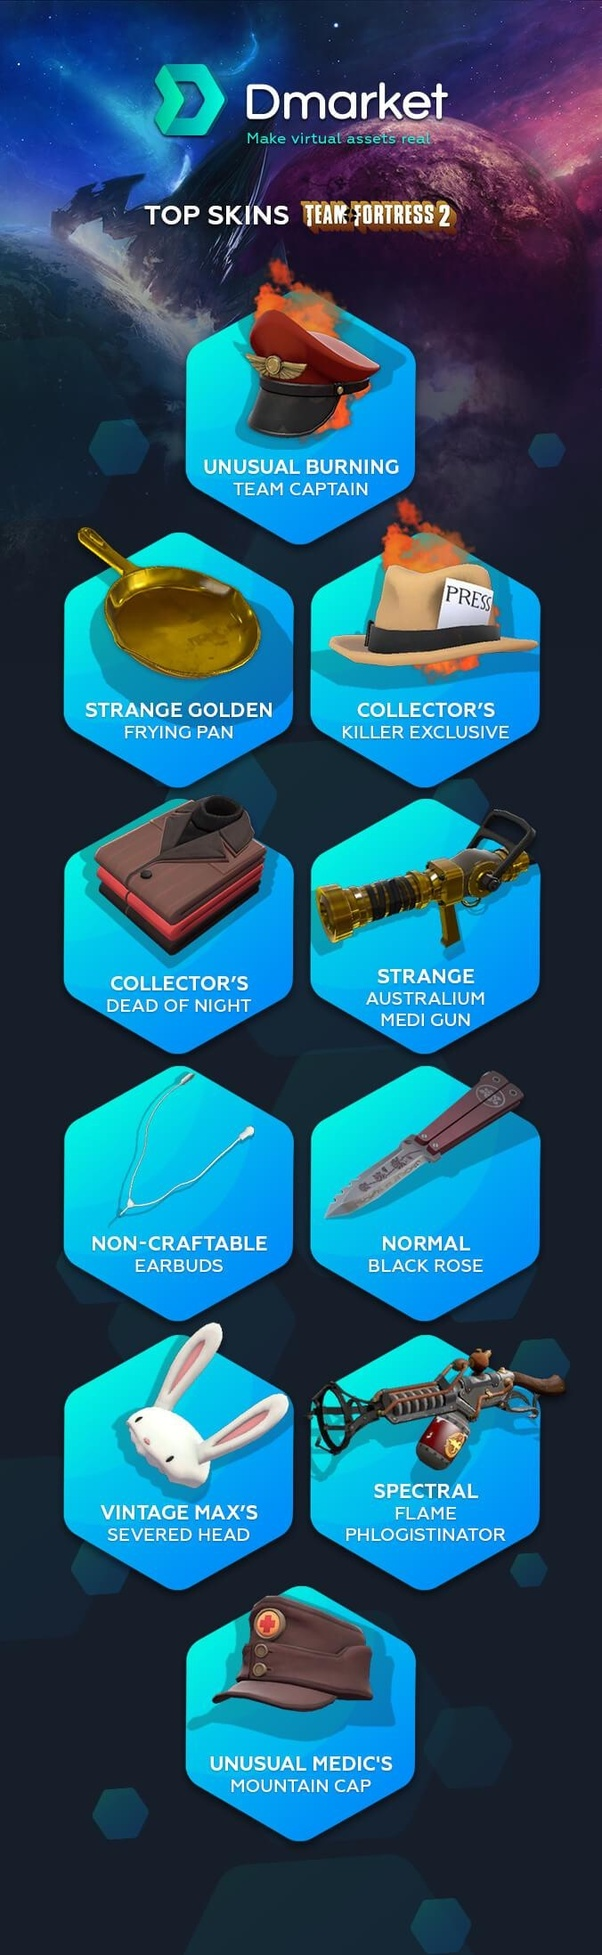 What are some of the most expensive and rarest items in TF2